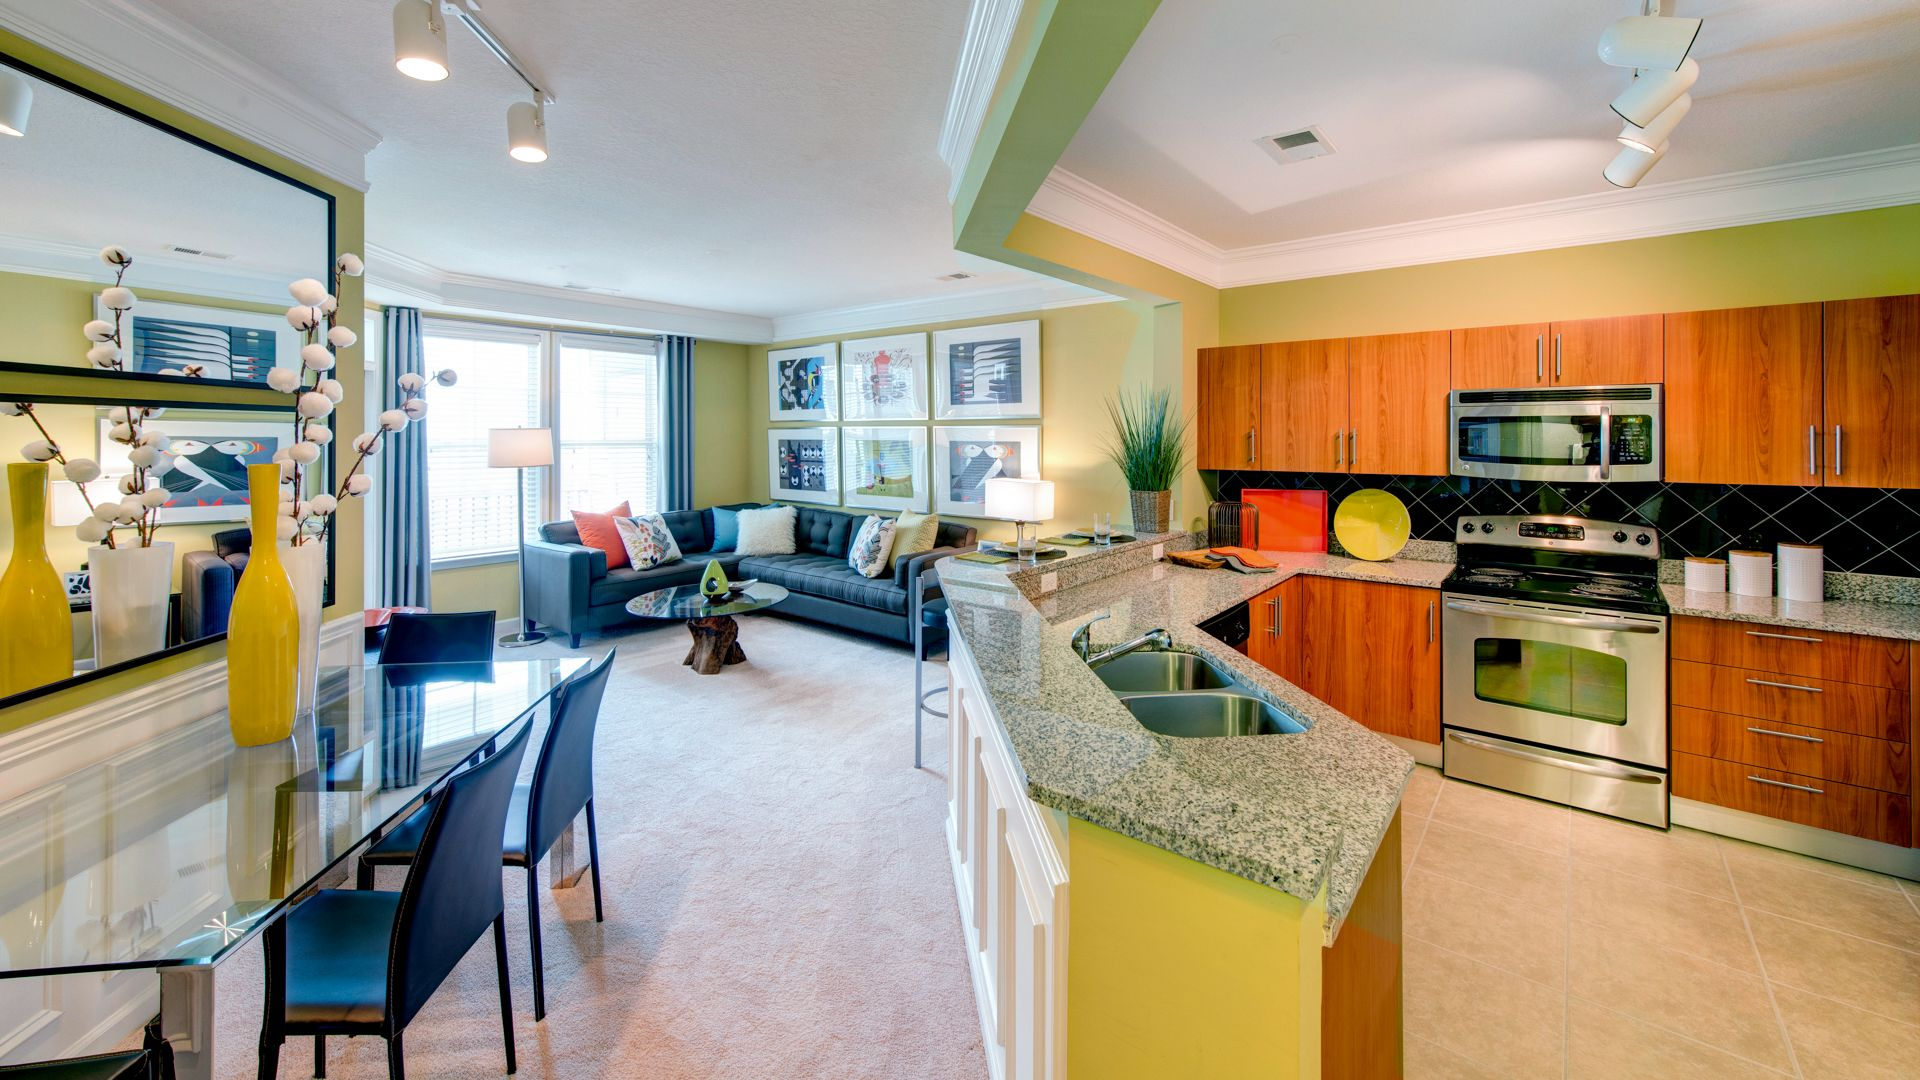 Gaithersburg Station Apartments - Kitchen and Dining Area